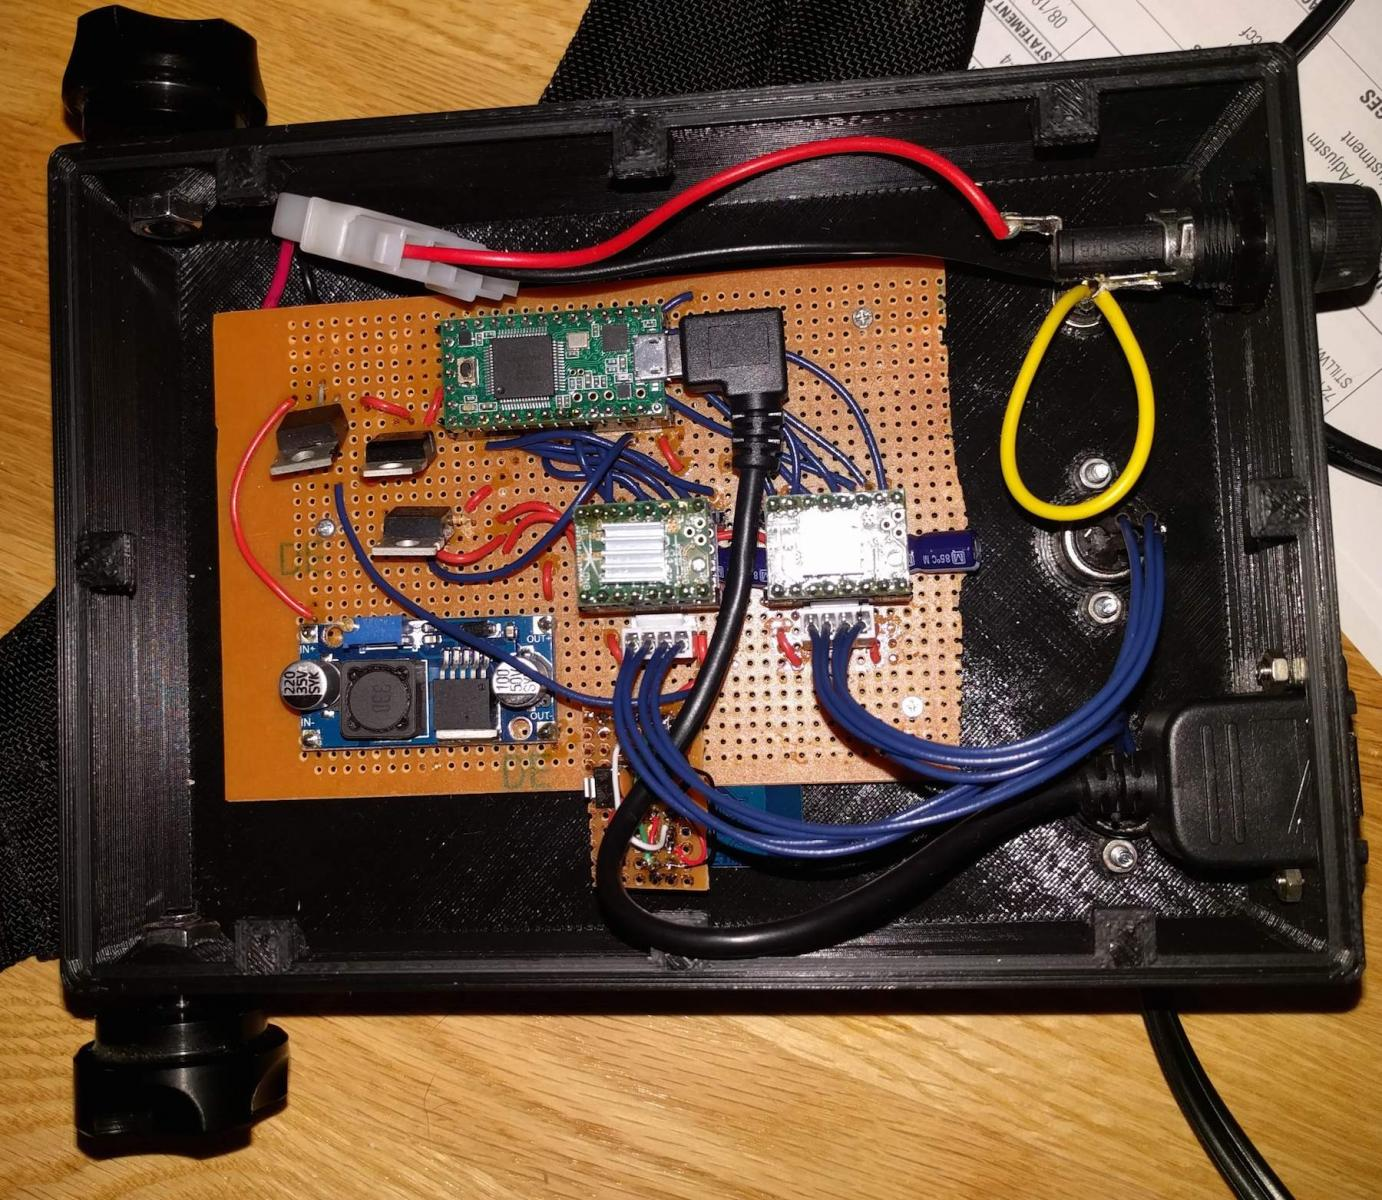 OnStep on a CG-11 - ATM, Optics and DIY Forum - Cloudy Nights